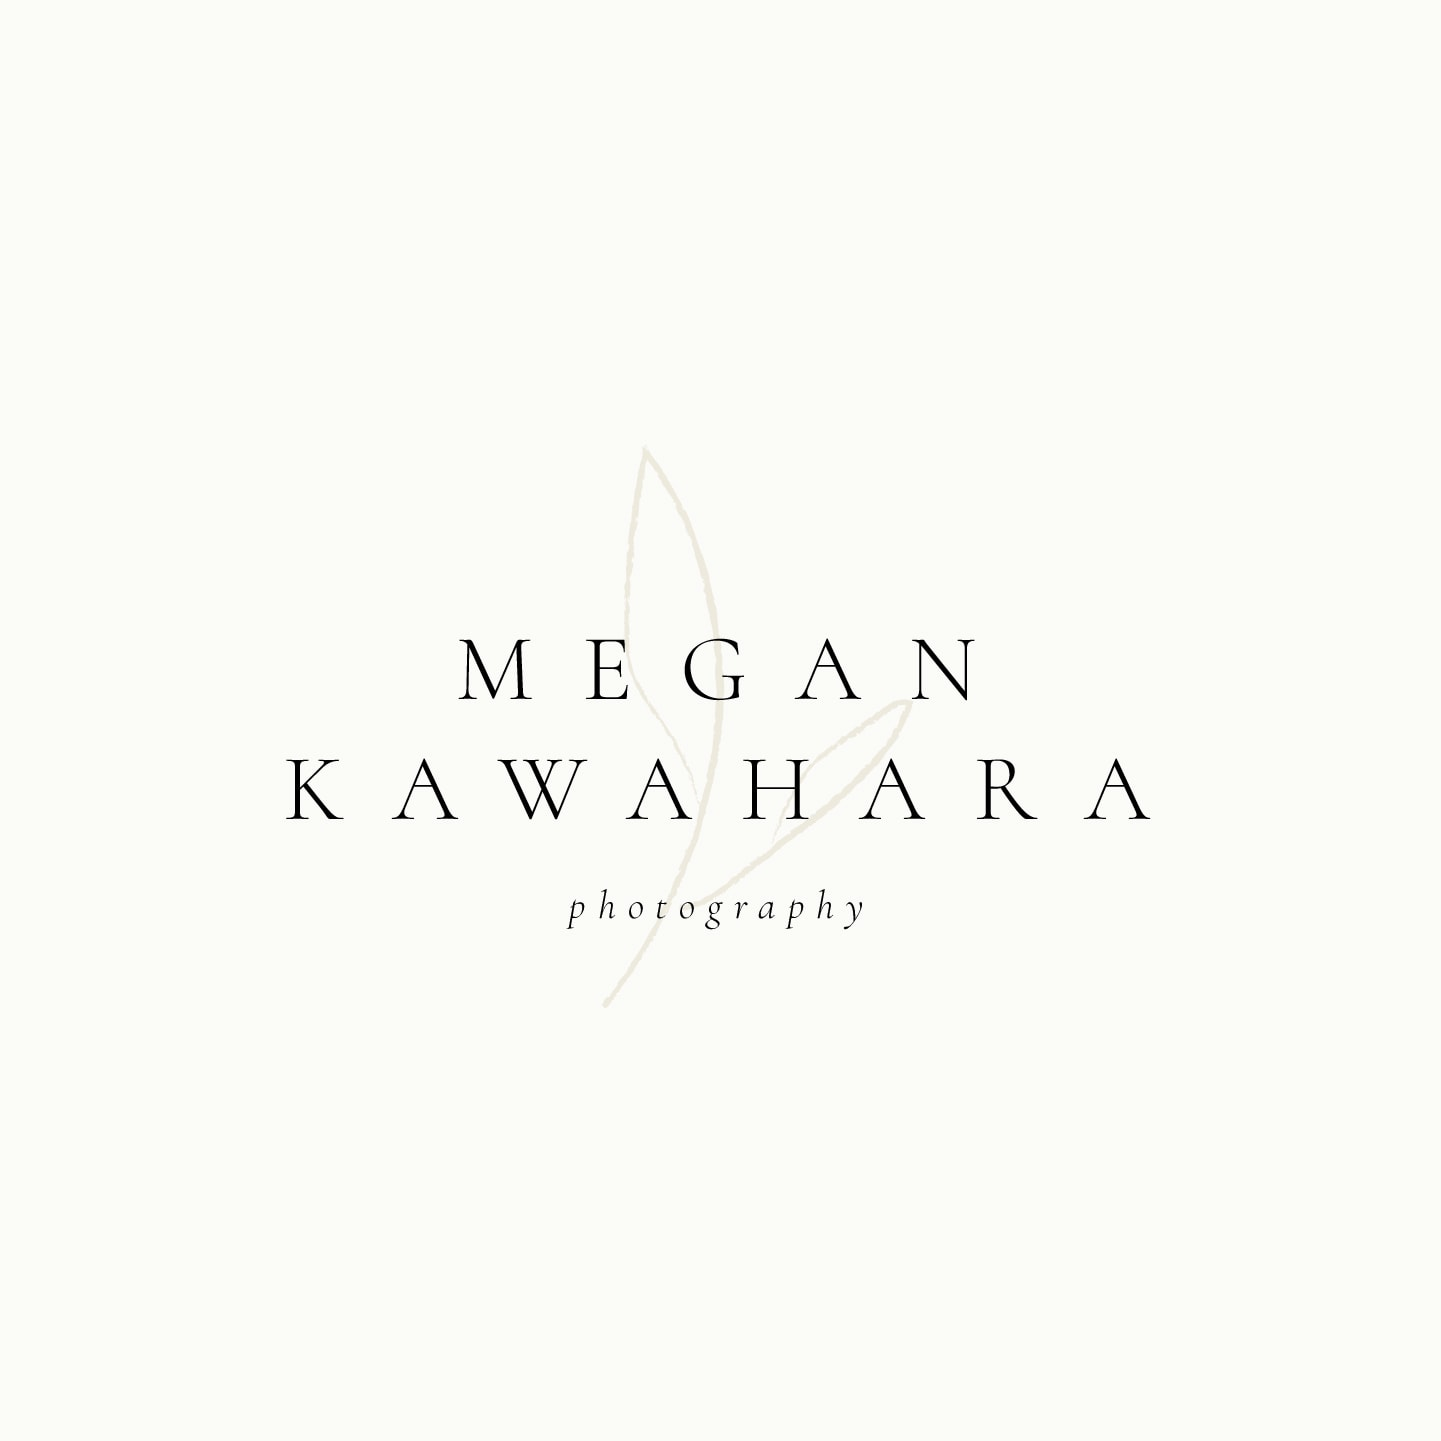 Affordable custom calligraphy brands by Davey & Krista